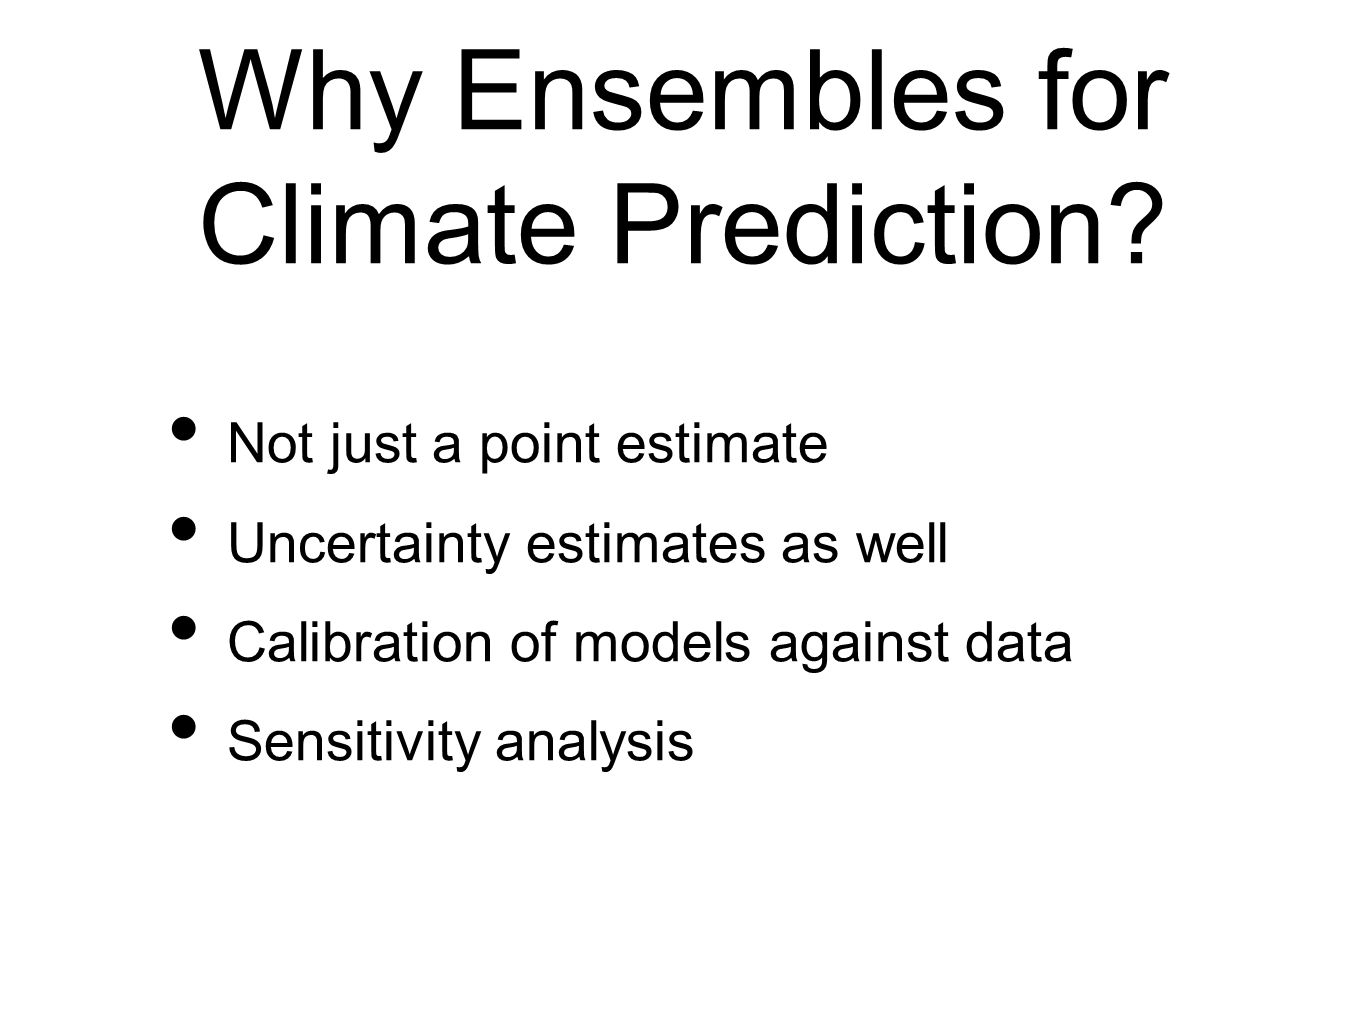 Why Ensembles for Climate Prediction